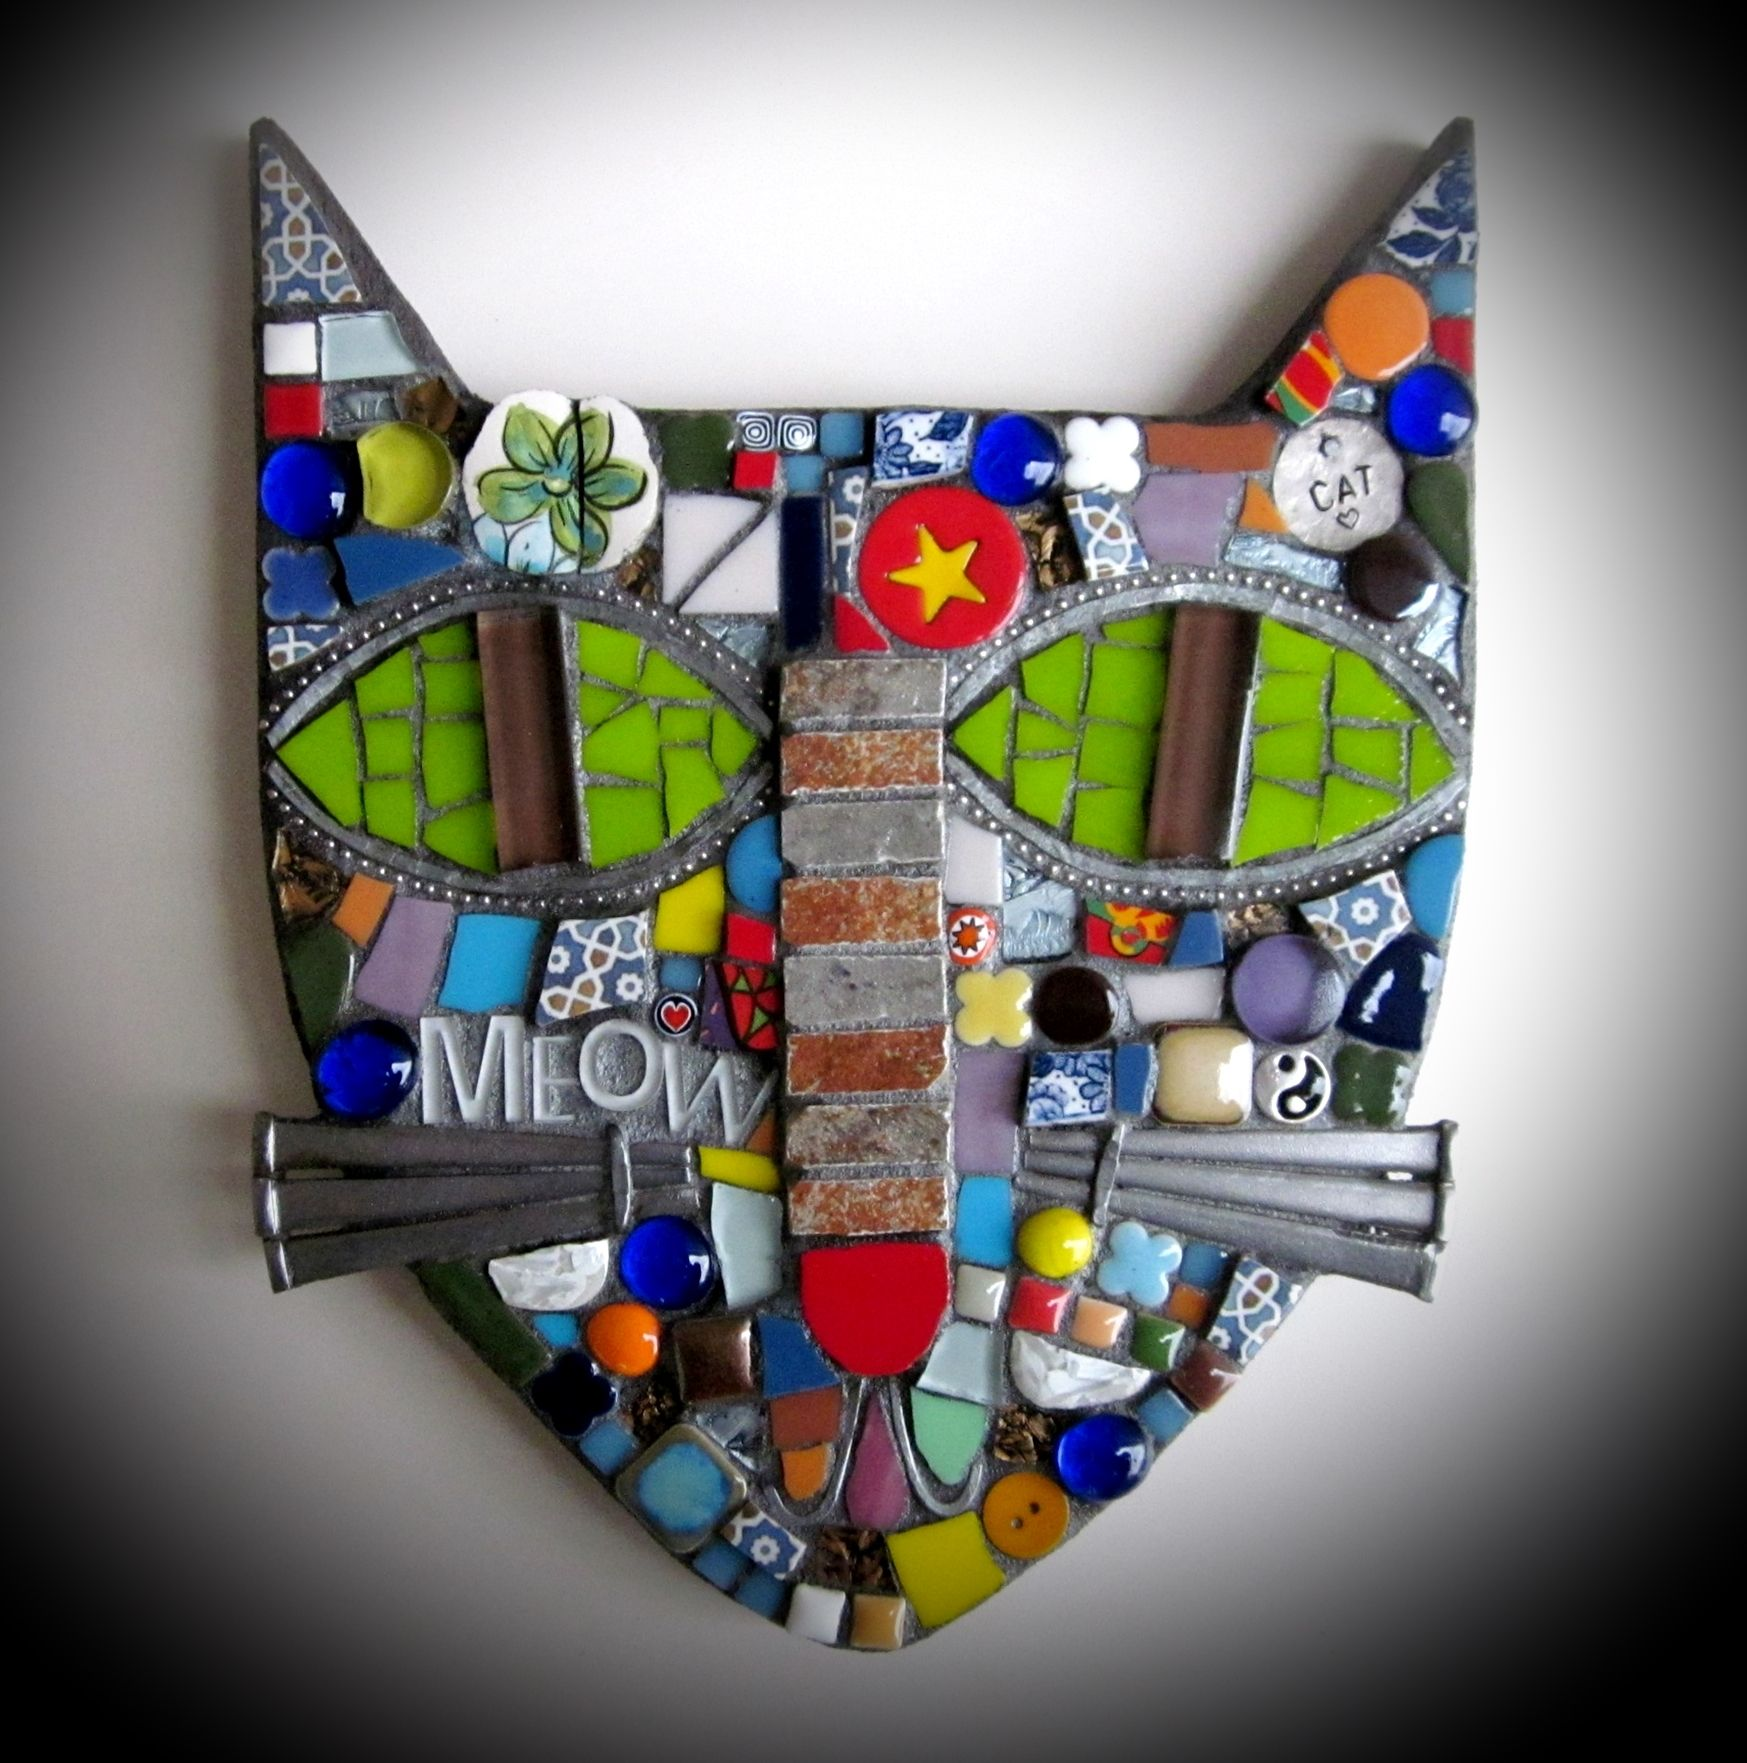 Sold custom made butterfly mosaic table top for mary ann in texas - Cat Mosaic Cat Mixed Media Assemblage Art Stained Glass Polymer Clay Art Cat